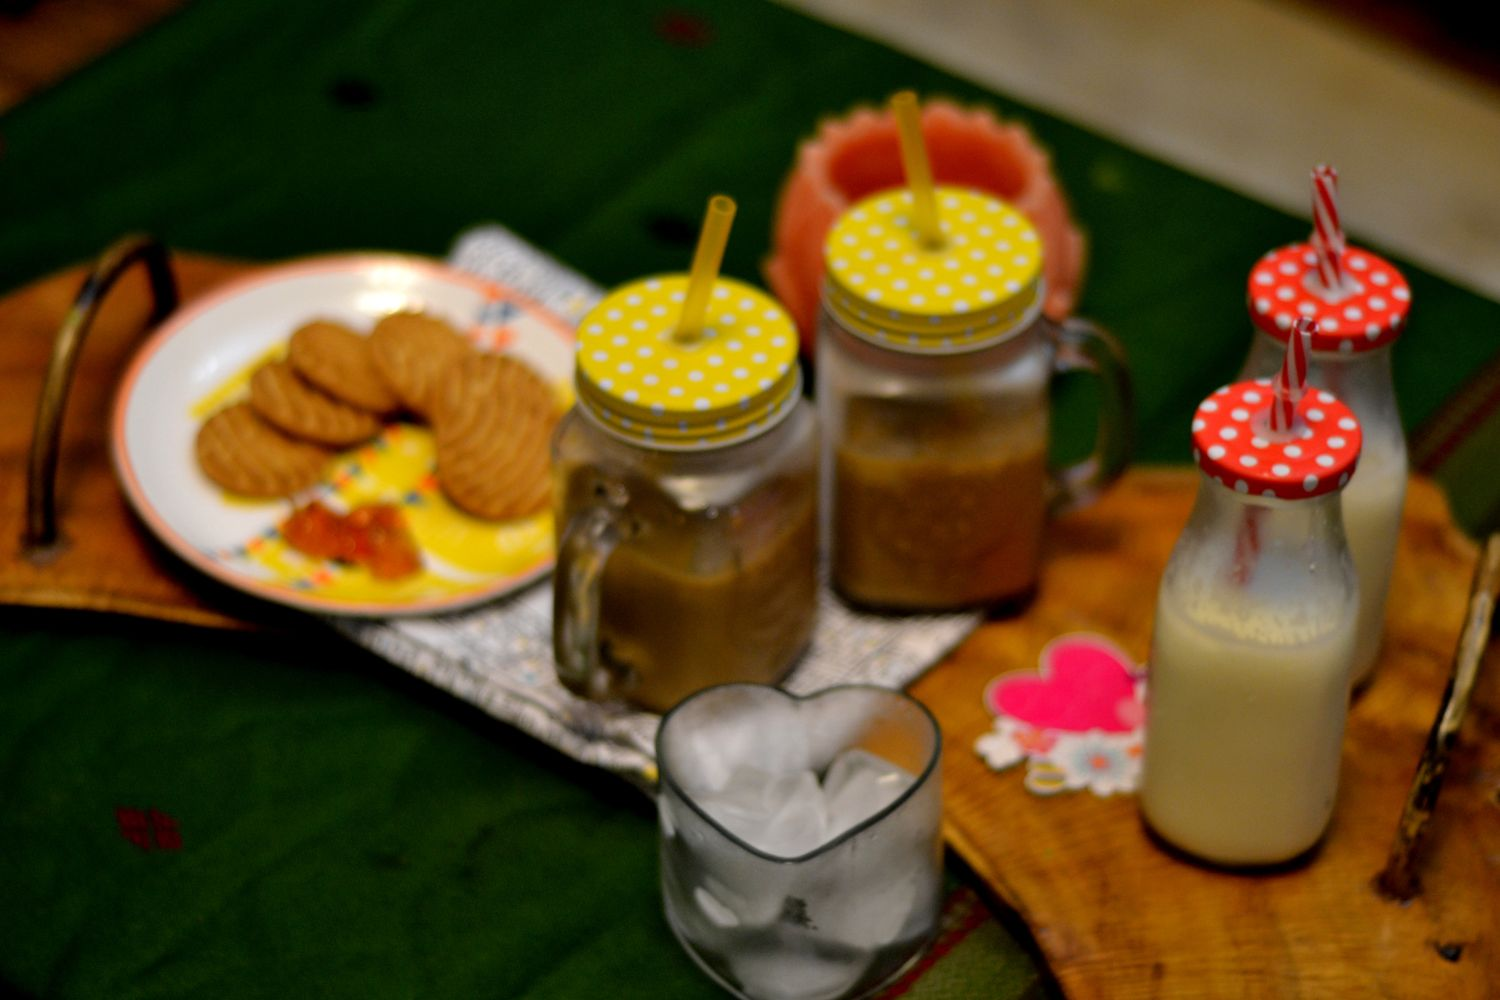 The Cold Coffee and Badam Milk Party